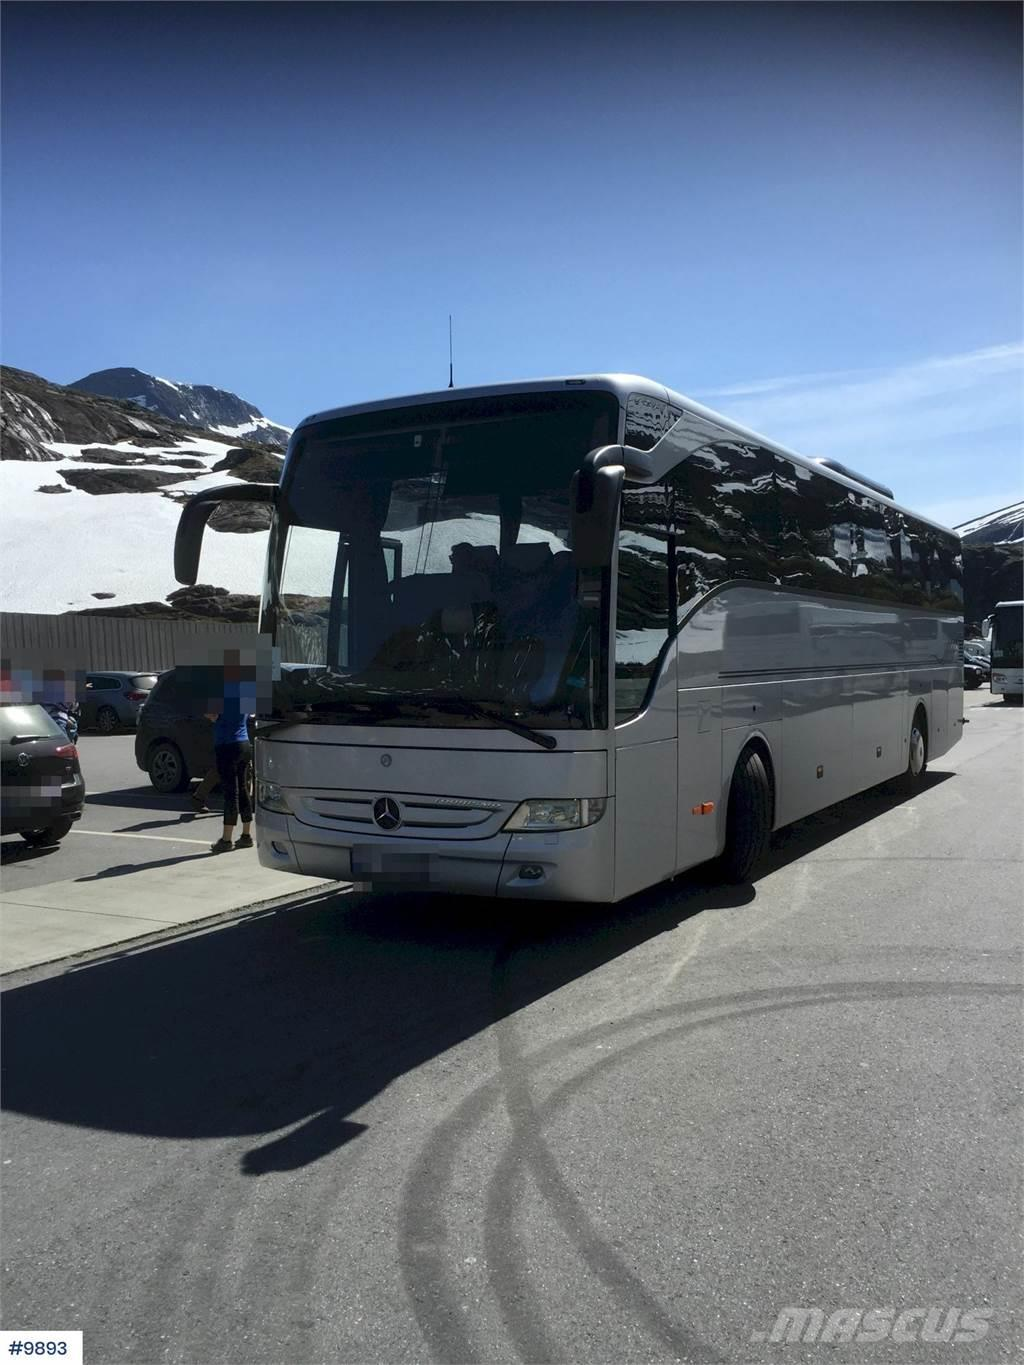 Mercedes-Benz Tourisimo bus with only 330.000 km